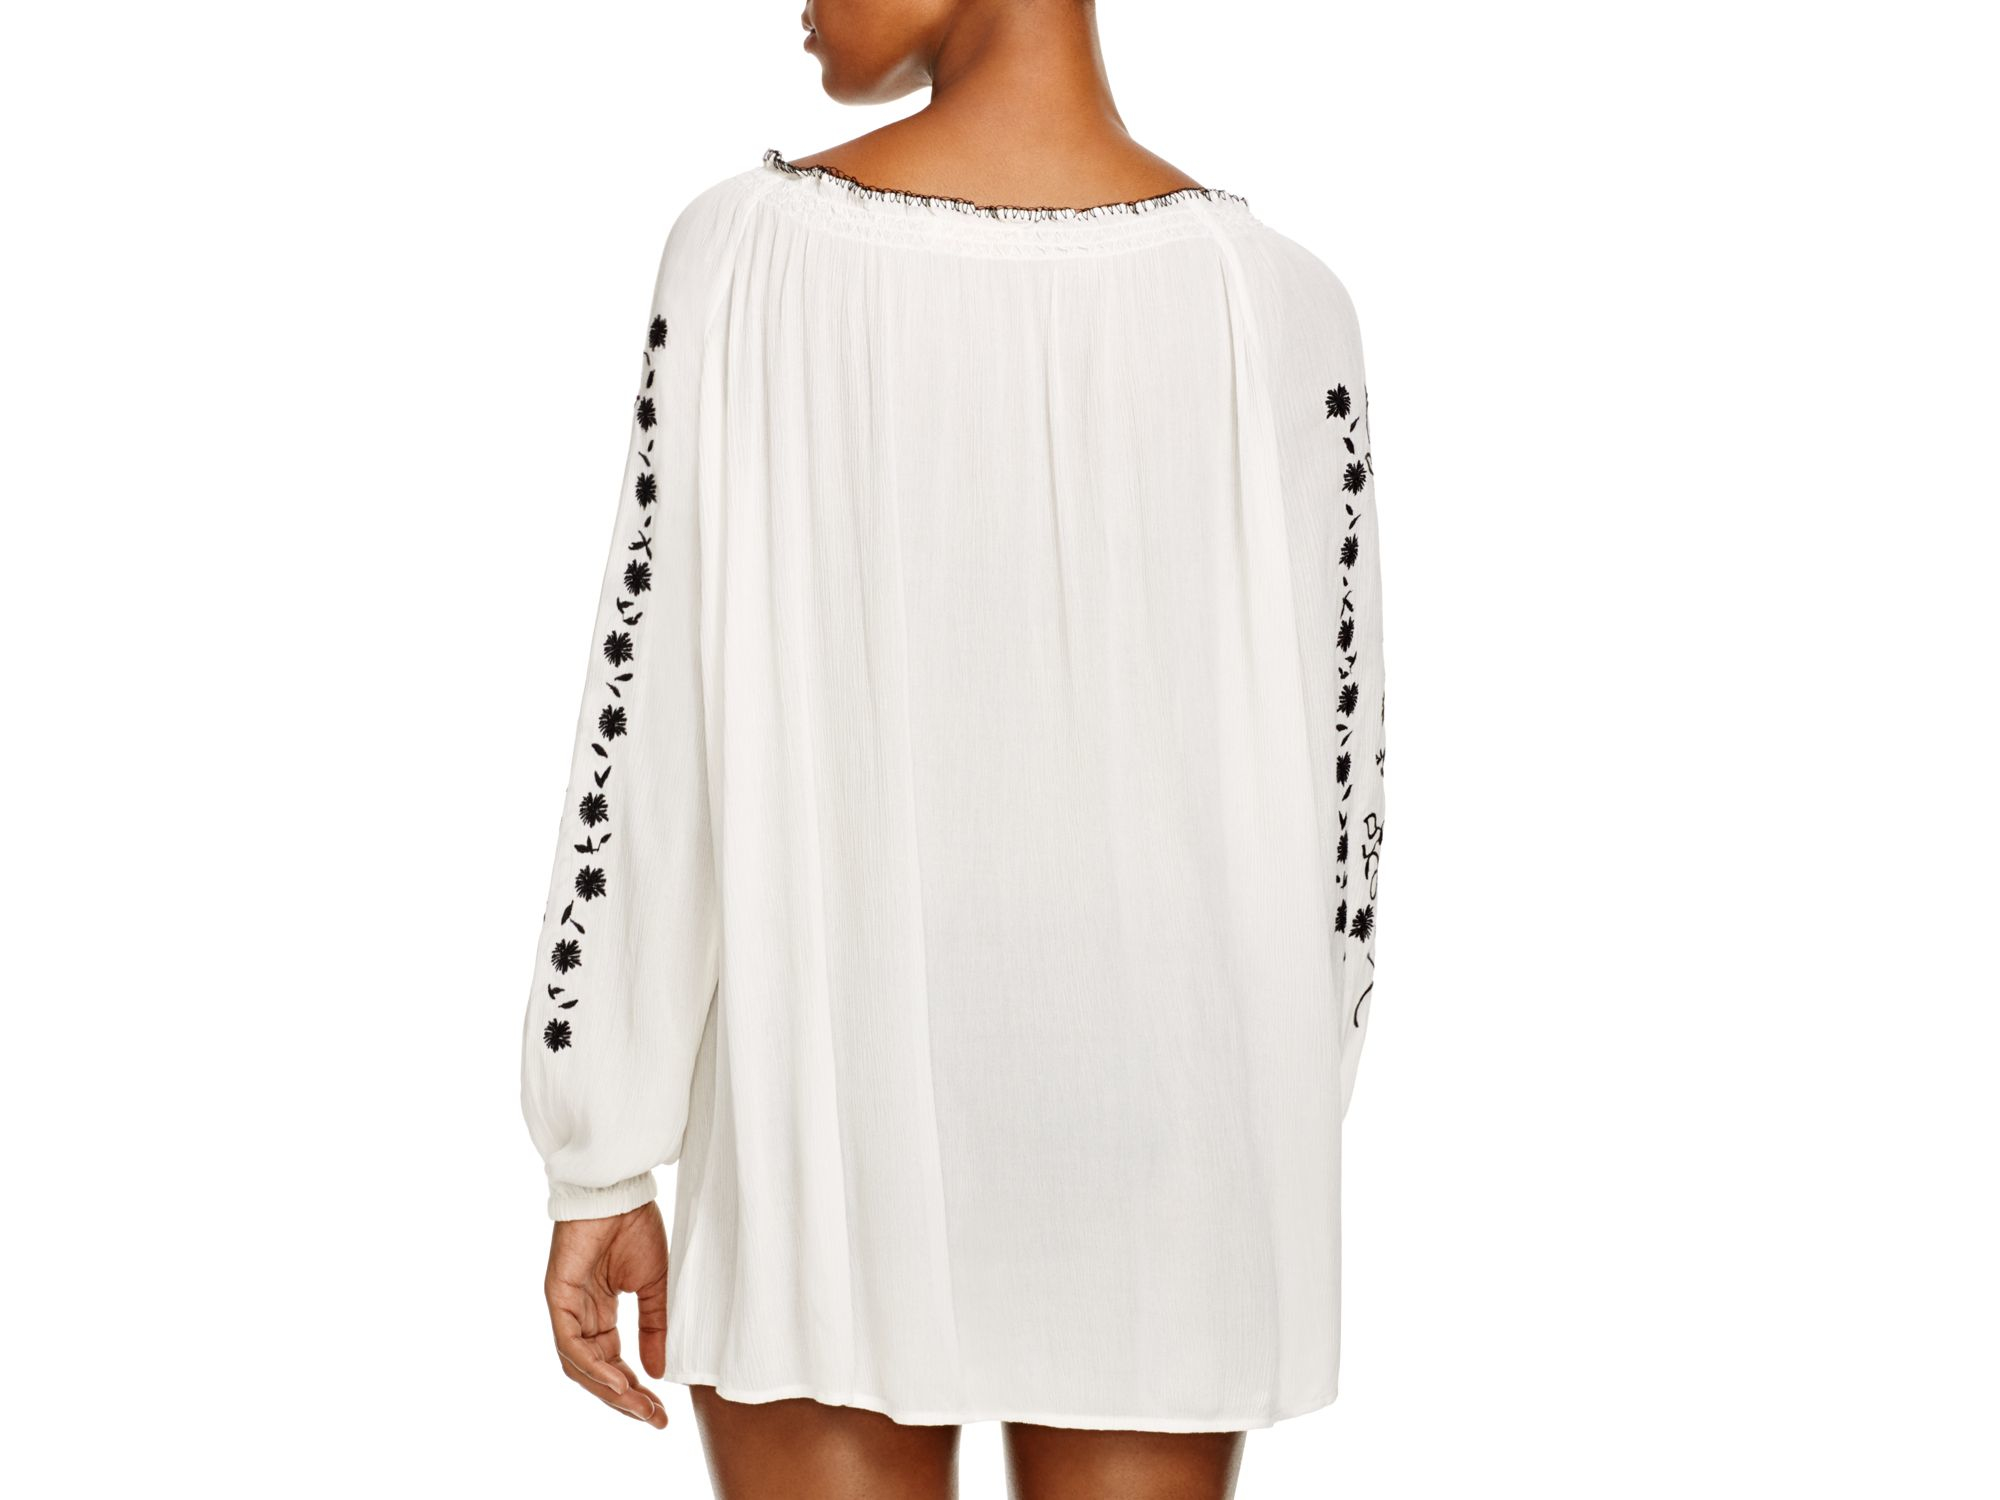 6fd9f8b62 Tory Burch Embroidered Gauze Top Swim Cover Up in Natural - Lyst